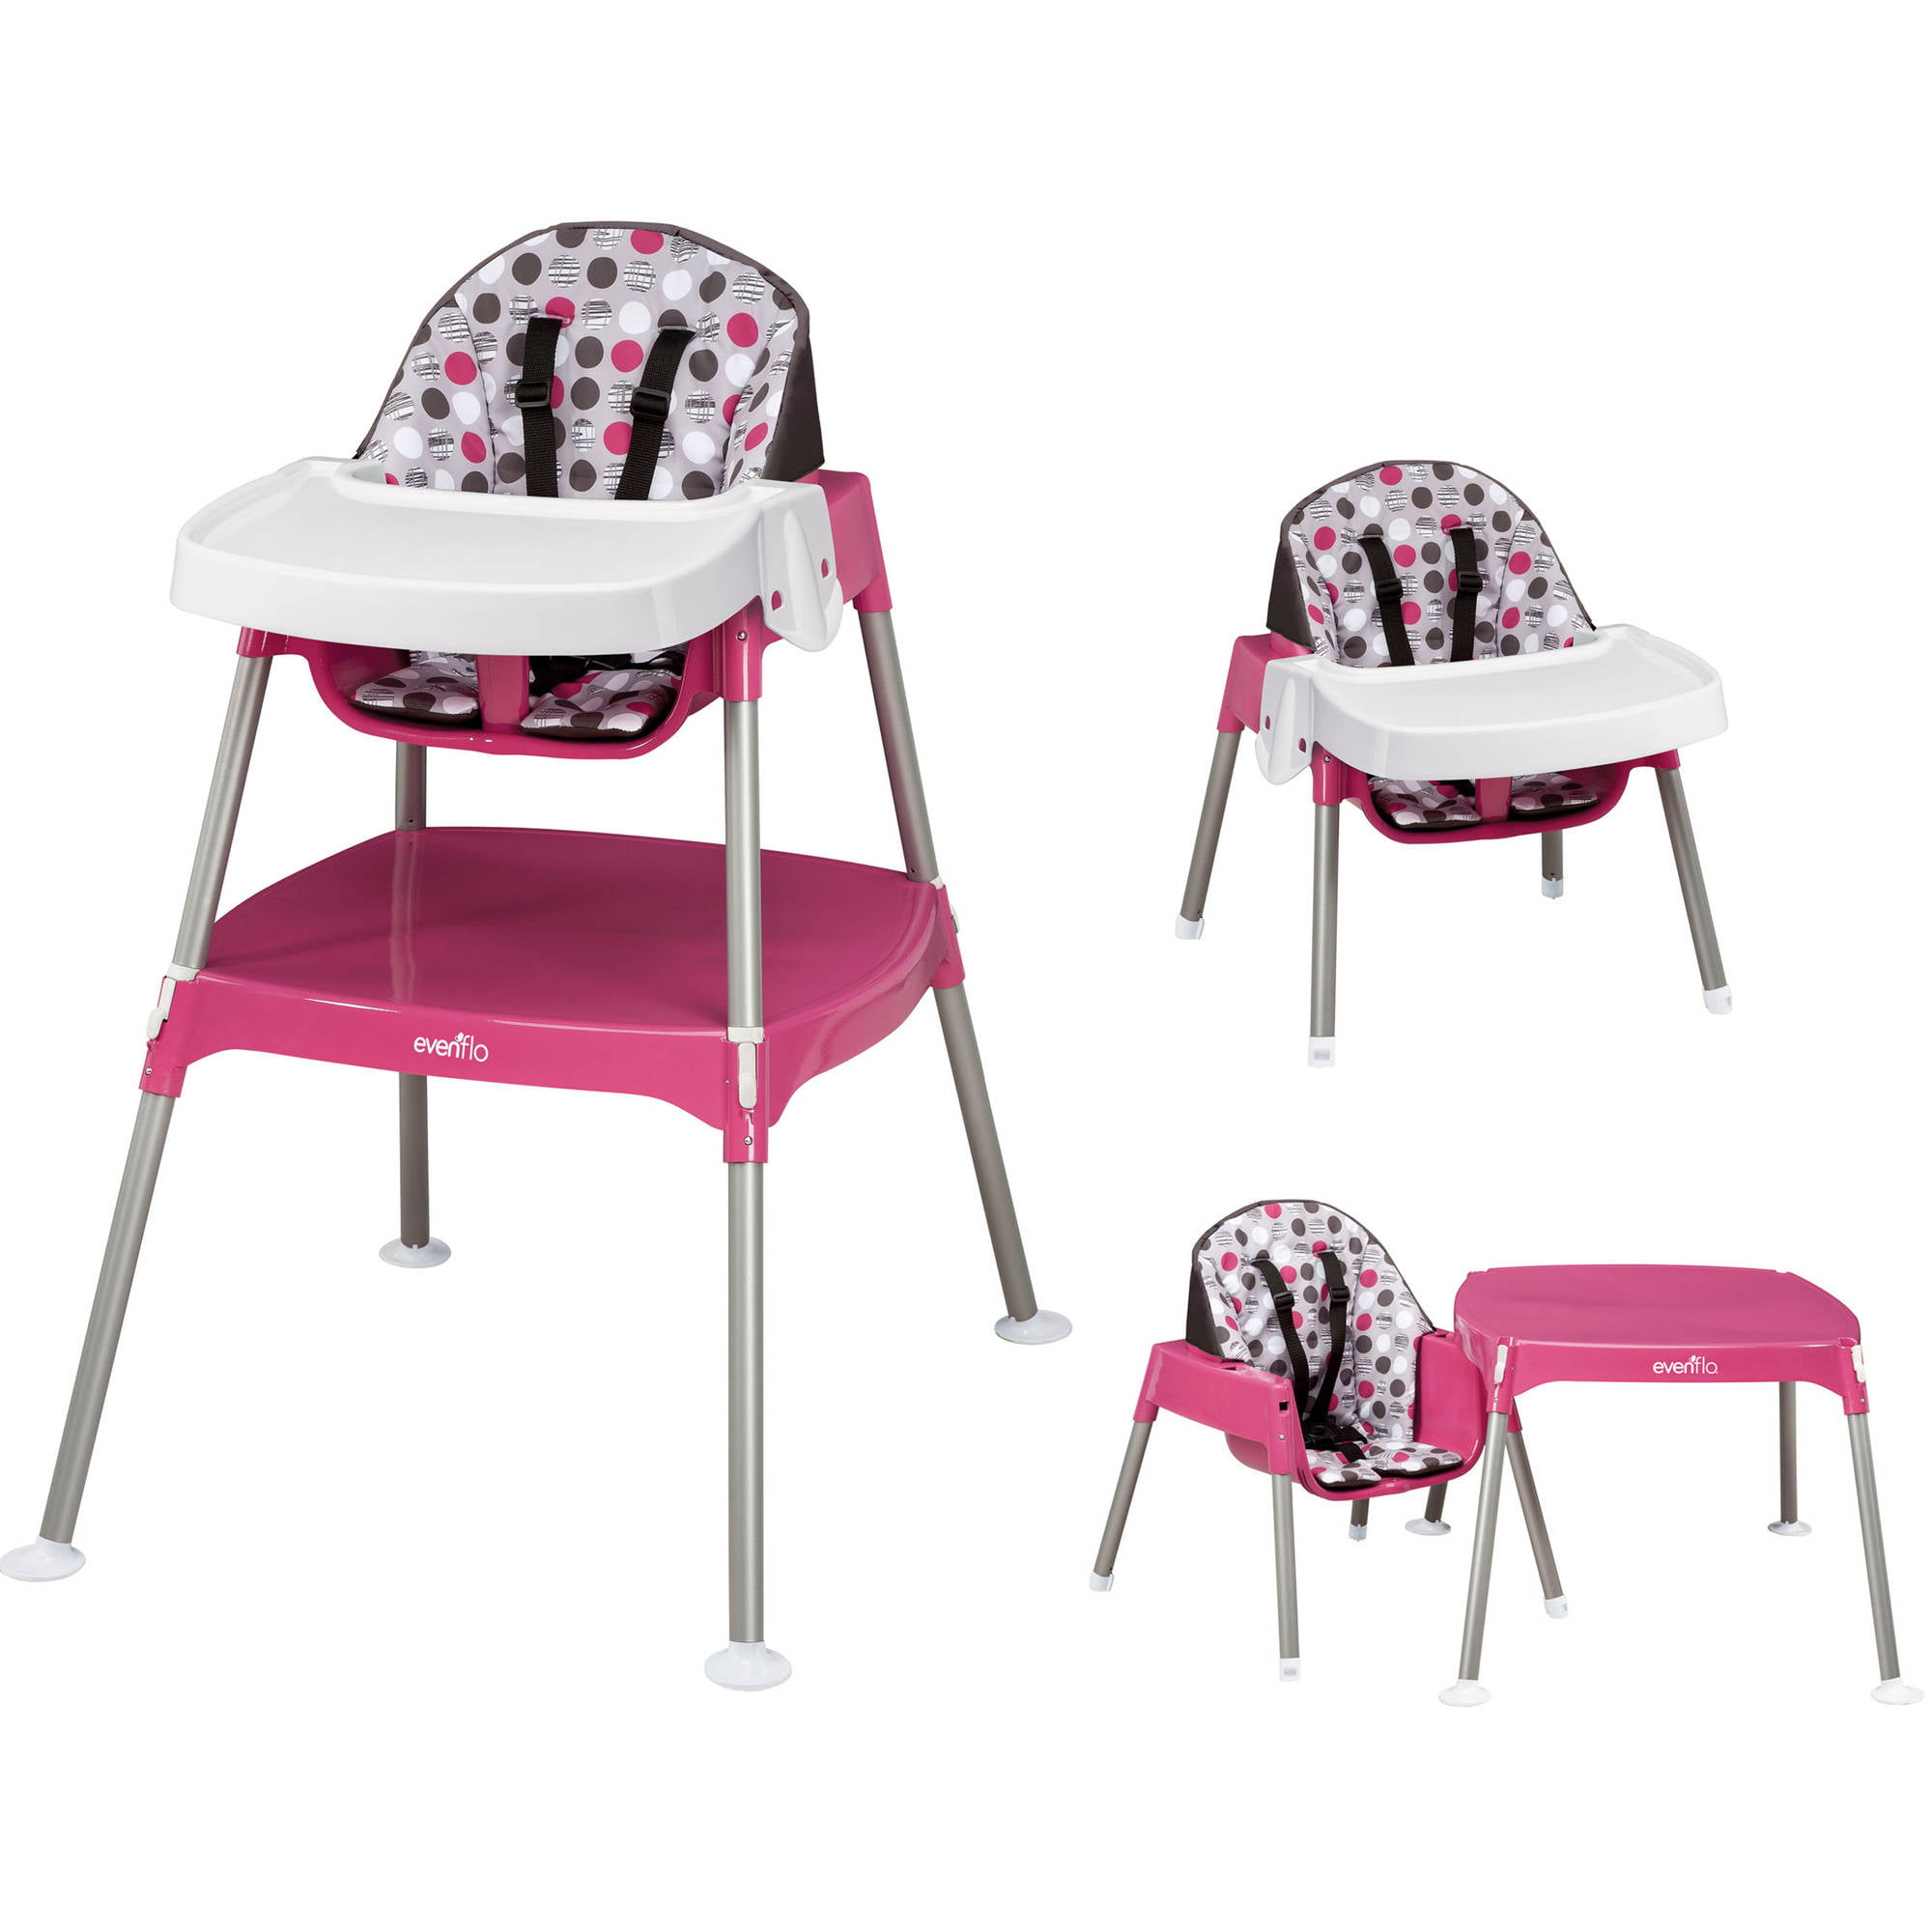 evenflo convertible high chair Evenflo 3 in 1 Convertible High Chair, Dottie Lime   Walmart.com evenflo convertible high chair